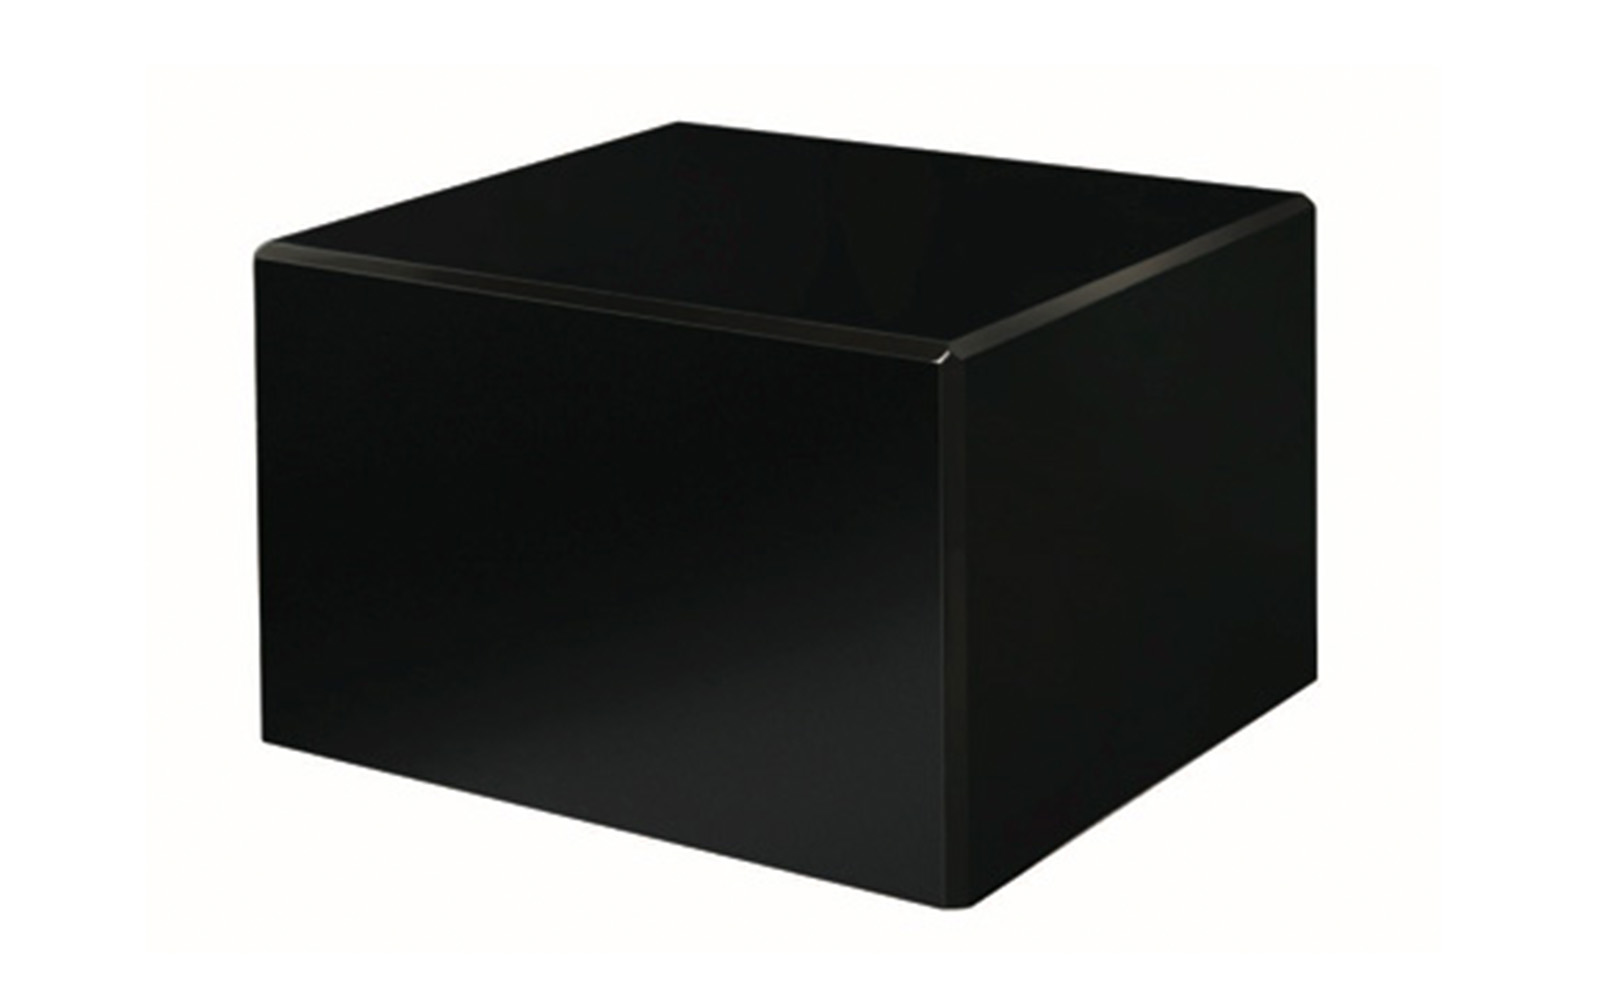 "Society Black   The sleek black design of this urn allows for a neat and polished memorial piece. This piece is simple yet refined to offer a commemorative of a beloved friend in any setting. This urn is available in small and large sizes only.   Small:  48 Cu. inches / up to 43 lbs. / 3.1"" x 3.1"" x 4.7""  $75    Large:  213 Cu. inches / up to 208 lbs. / 6.0"" x 7.7"" x 4.6""  $125"